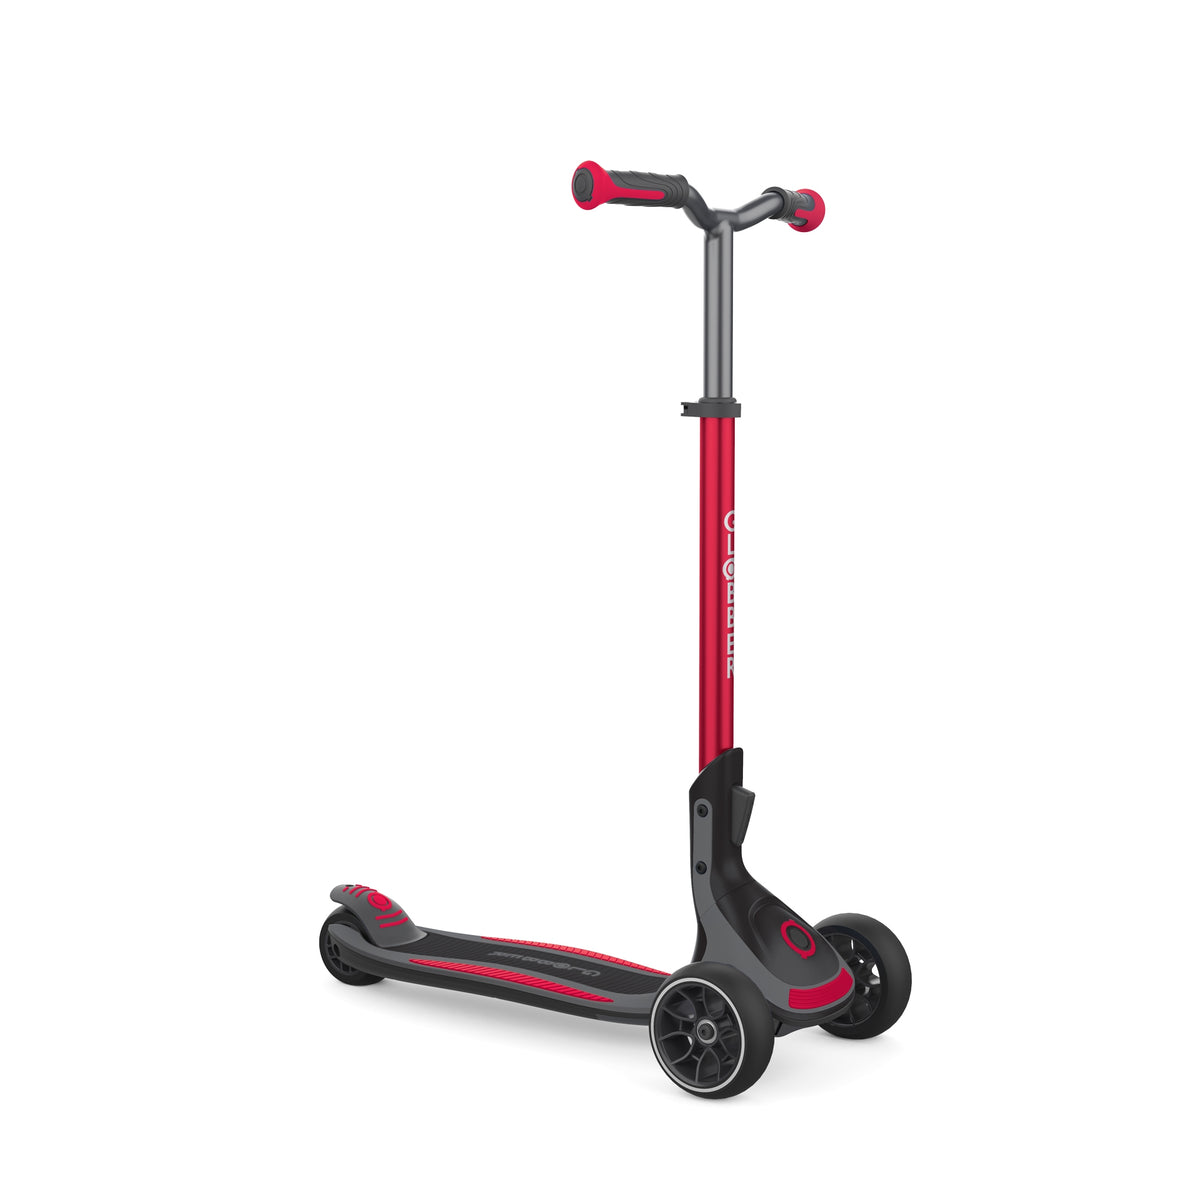 Globber ULTIMUM 3 Wheeled Adjustable Steering Folding Kick Scooter